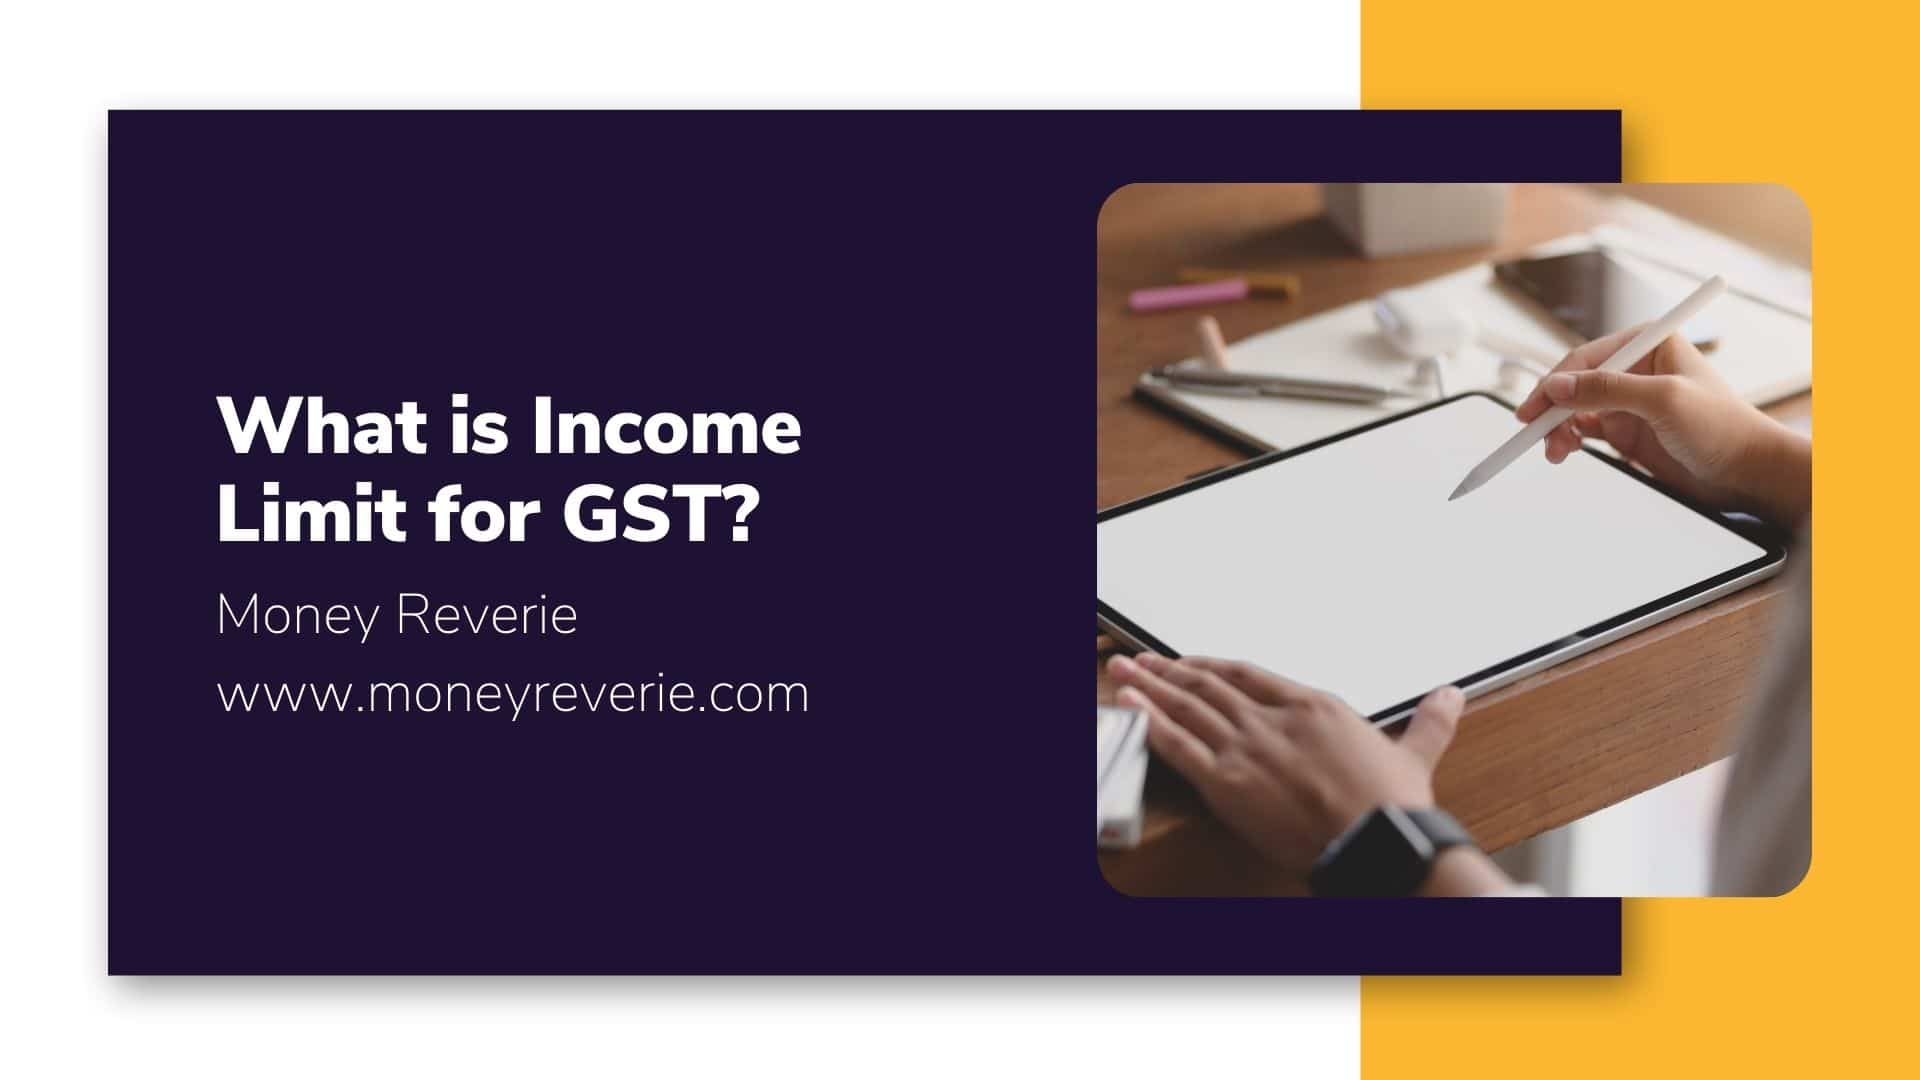 What is Income Limit for GST